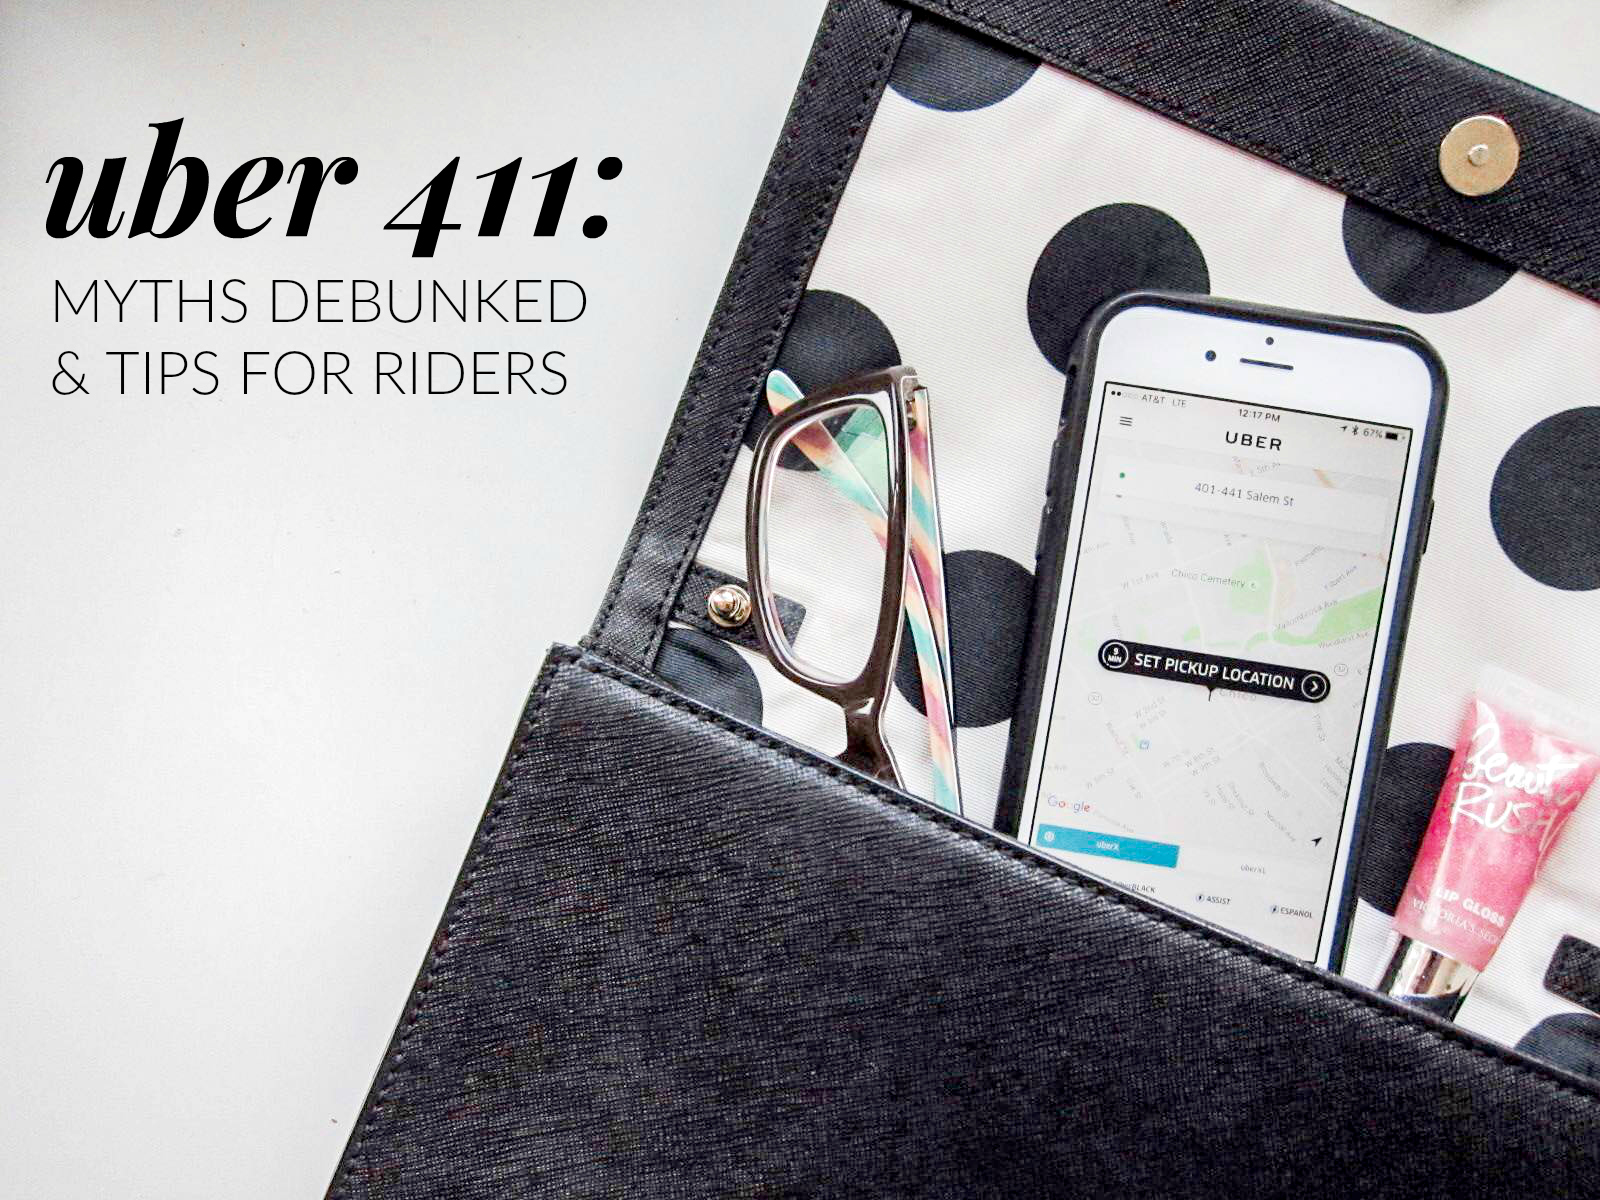 Uber 411: Myths Debunked & Tips for Riders - photo of clutch with eye glasses, iphone with Uber app open, and lip gloss